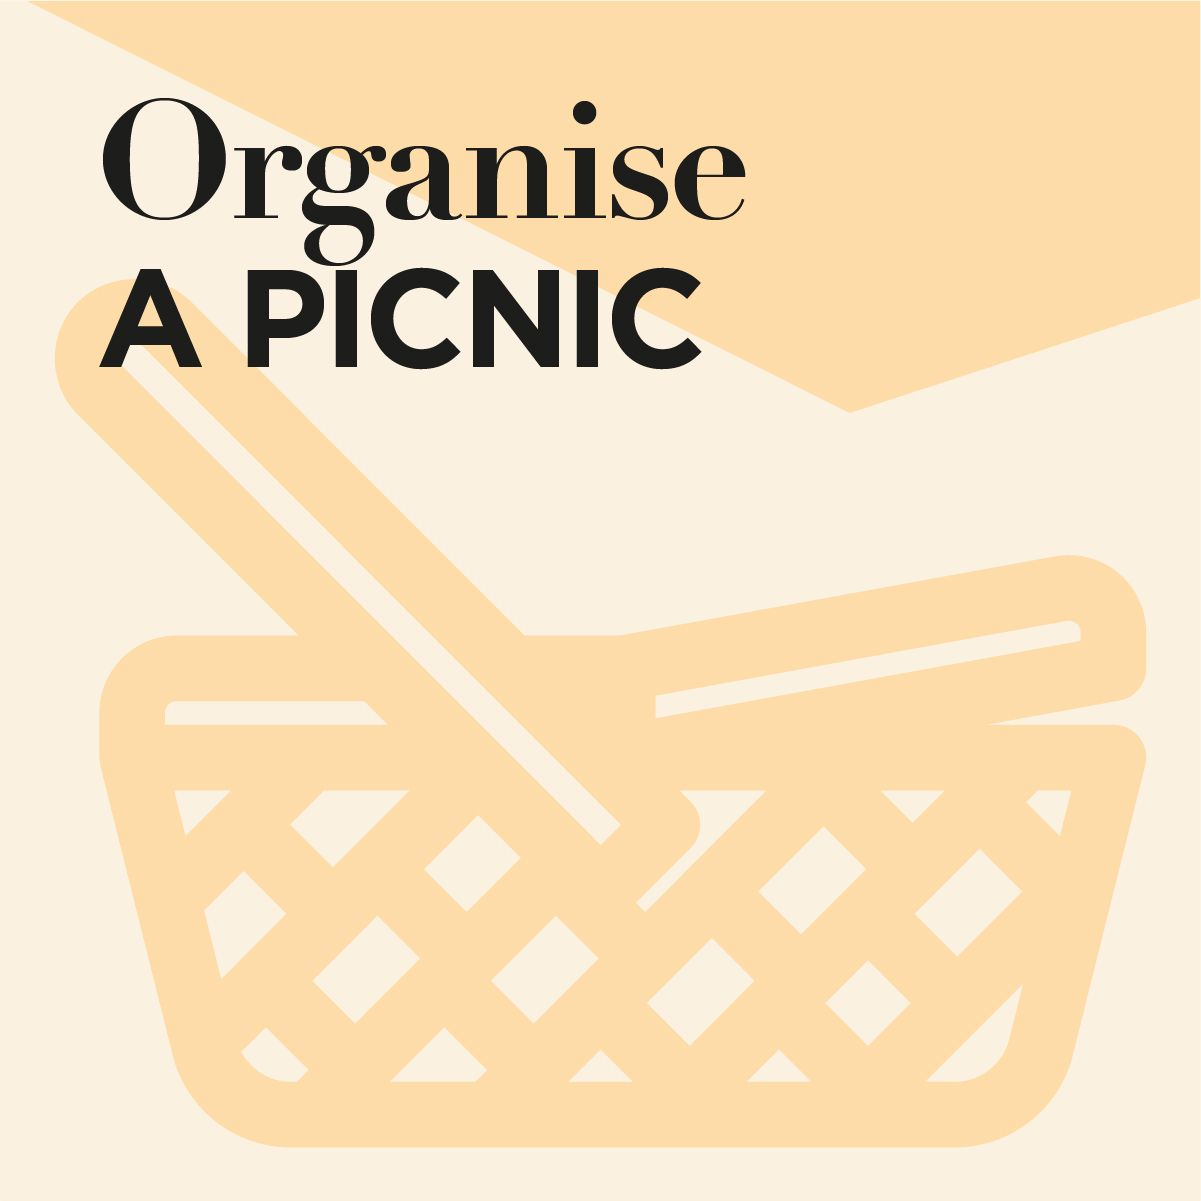 Organise a picnic